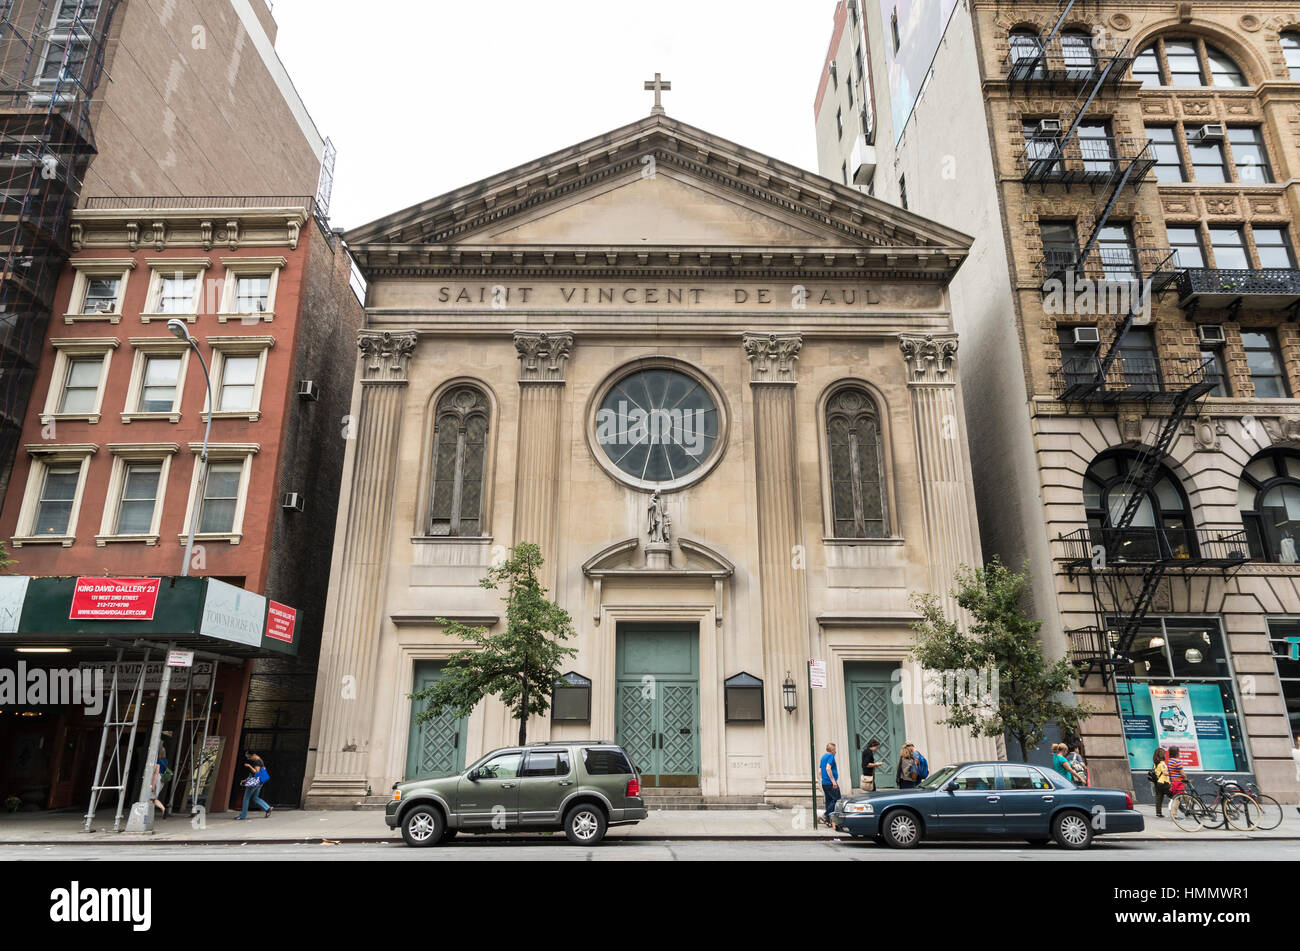 Außenfassade der Kirche Saint-Vincent De Paul in Manhattan, New York, USA Stockbild